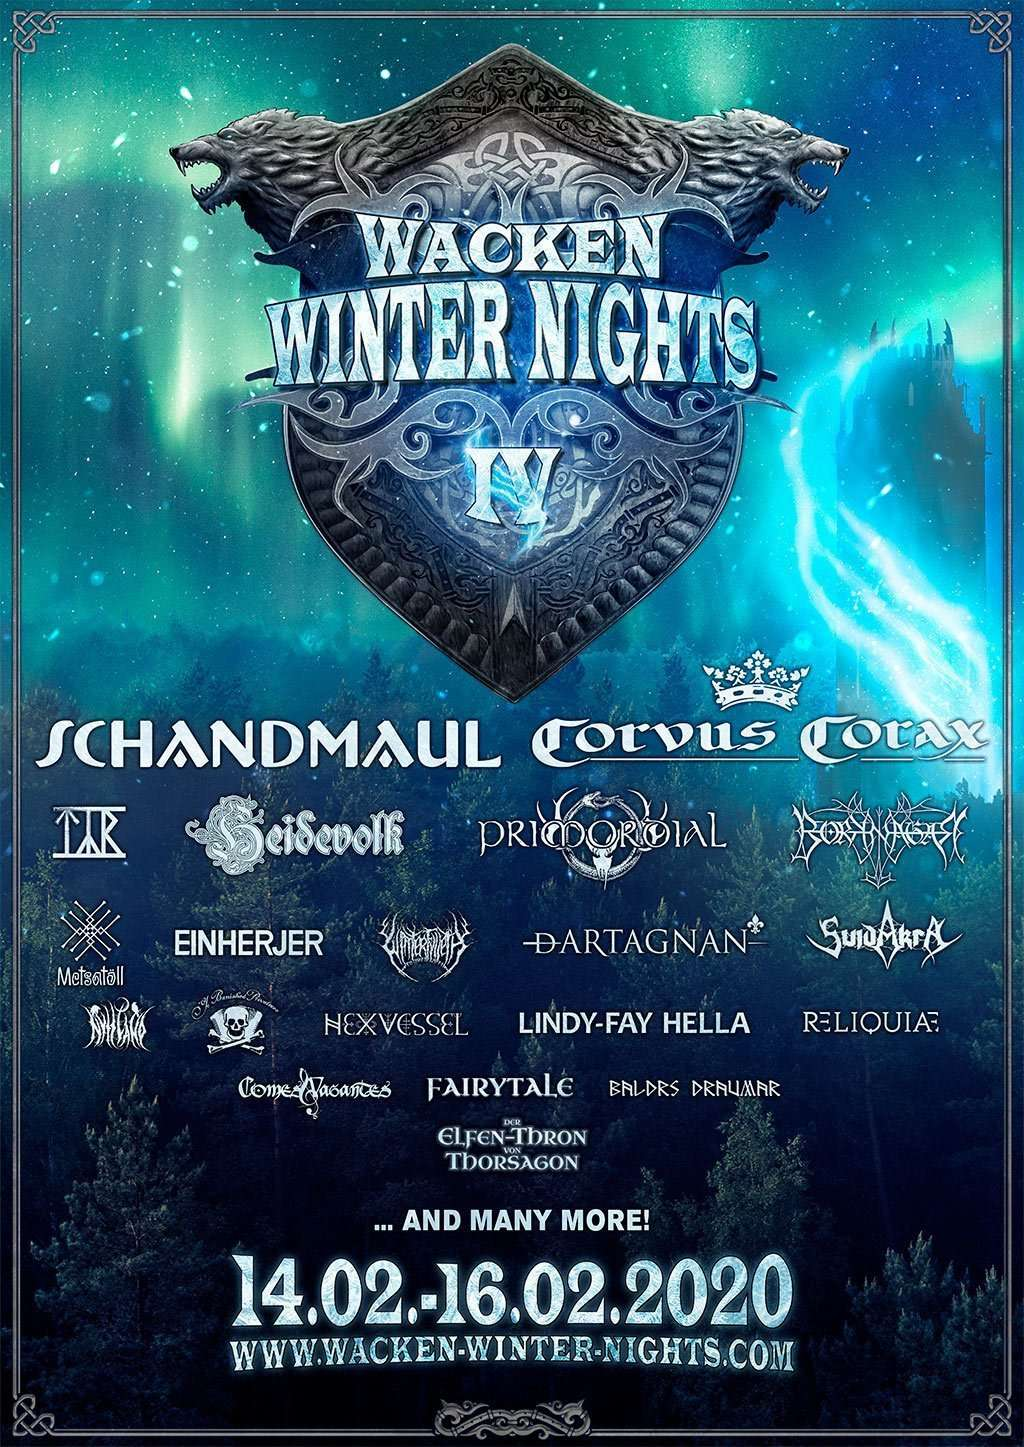 Wacken Winter Nights 2020